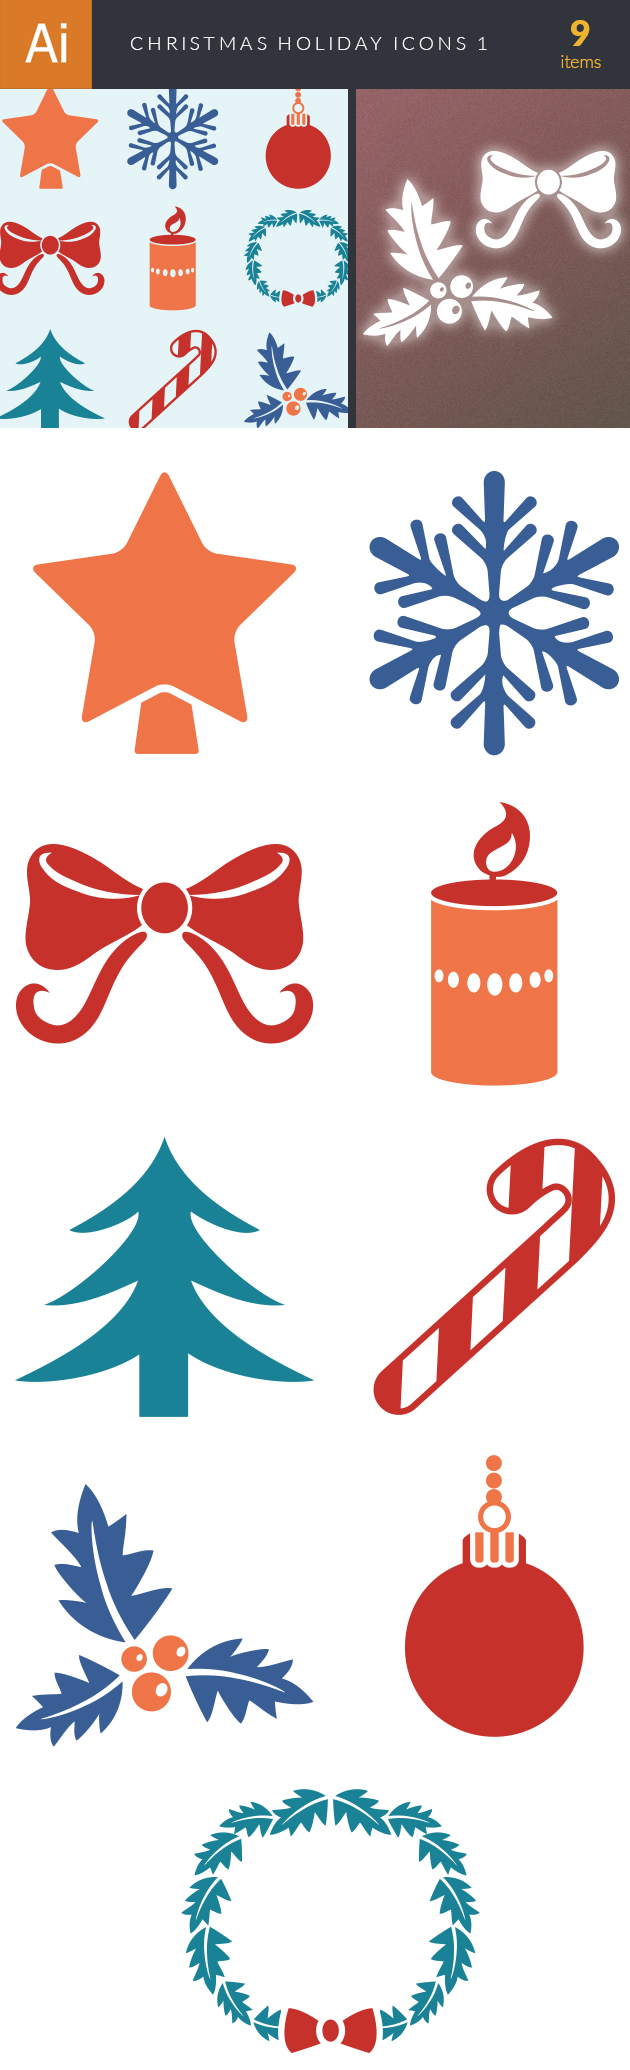 Christmas Holiday Icons Vector Set 1 designtnt christmas holiday icons vector set 1 vector large